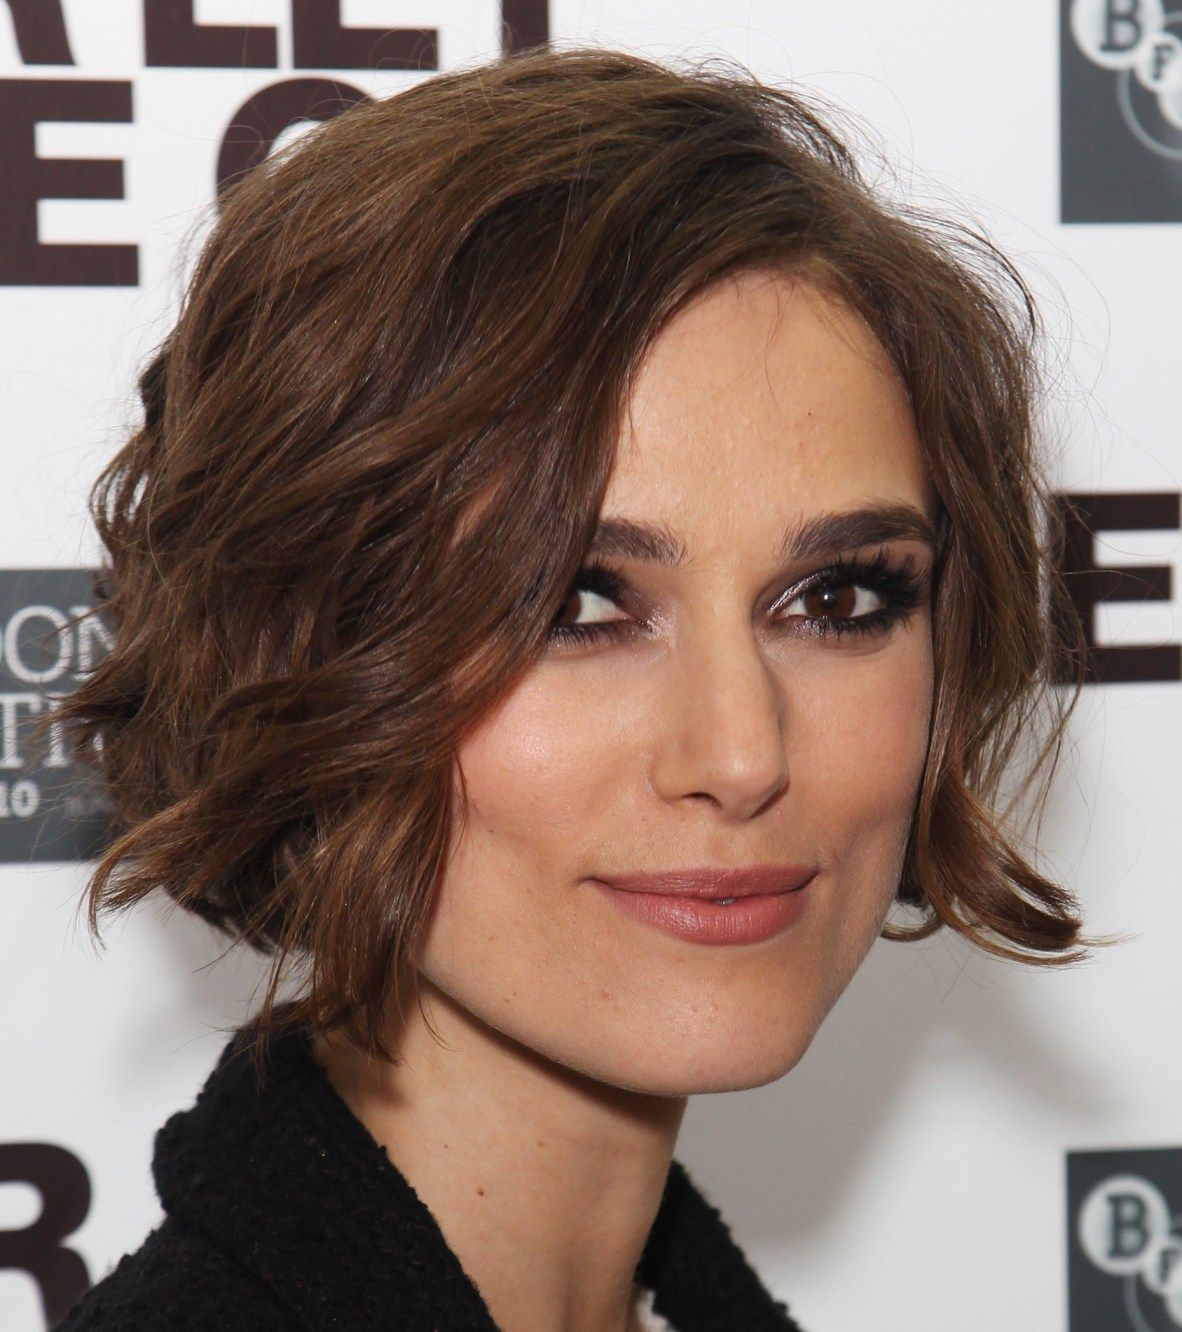 50 best hairstyles for square faces rounding the angles | pinterest